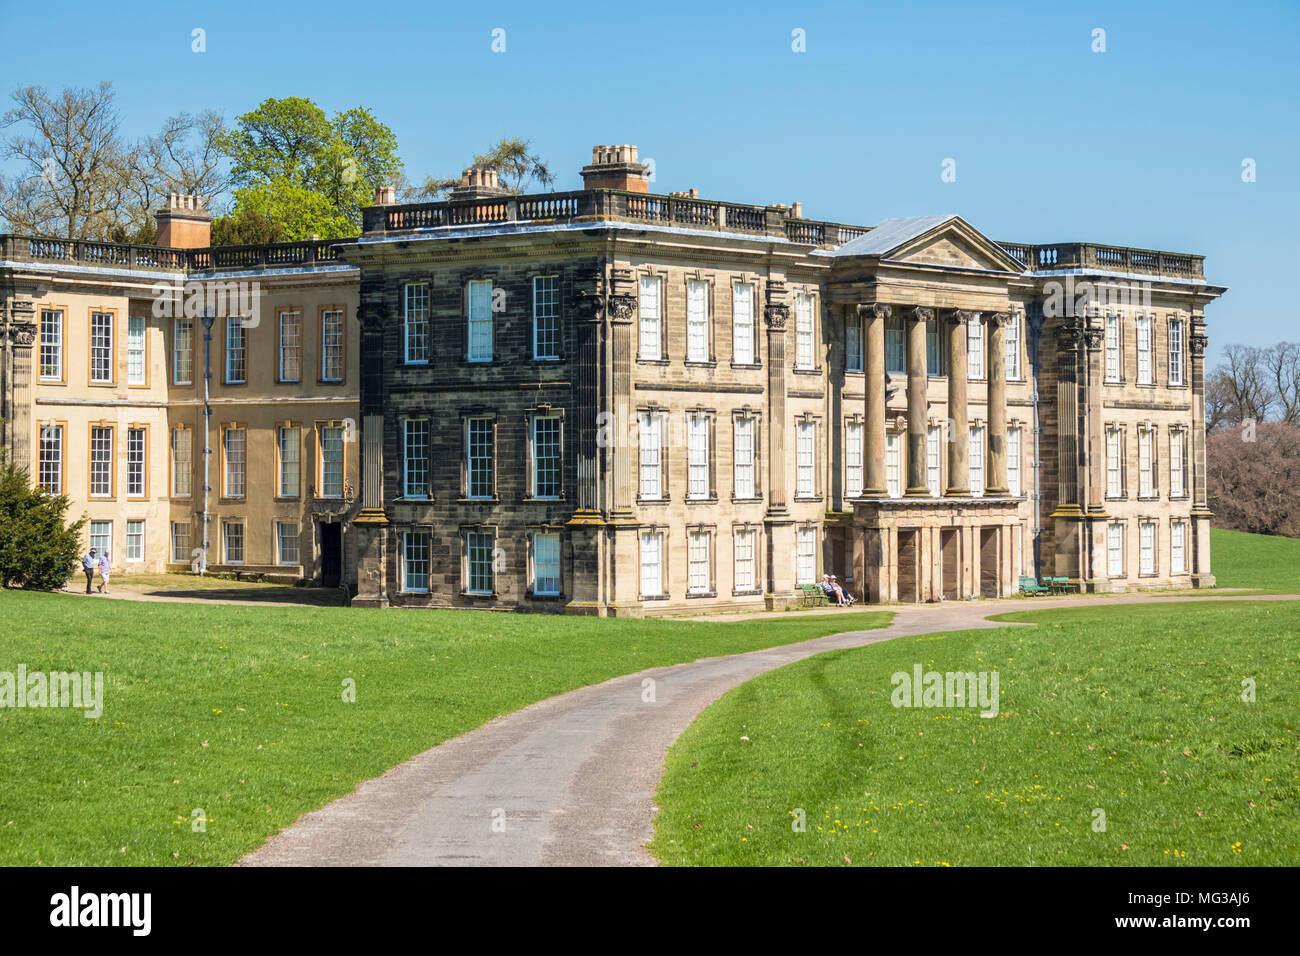 Abbaye de calke derbyshire stately home uk calke Abbey Park ticknall angleterre derbyshire uk go europe Photo Stock